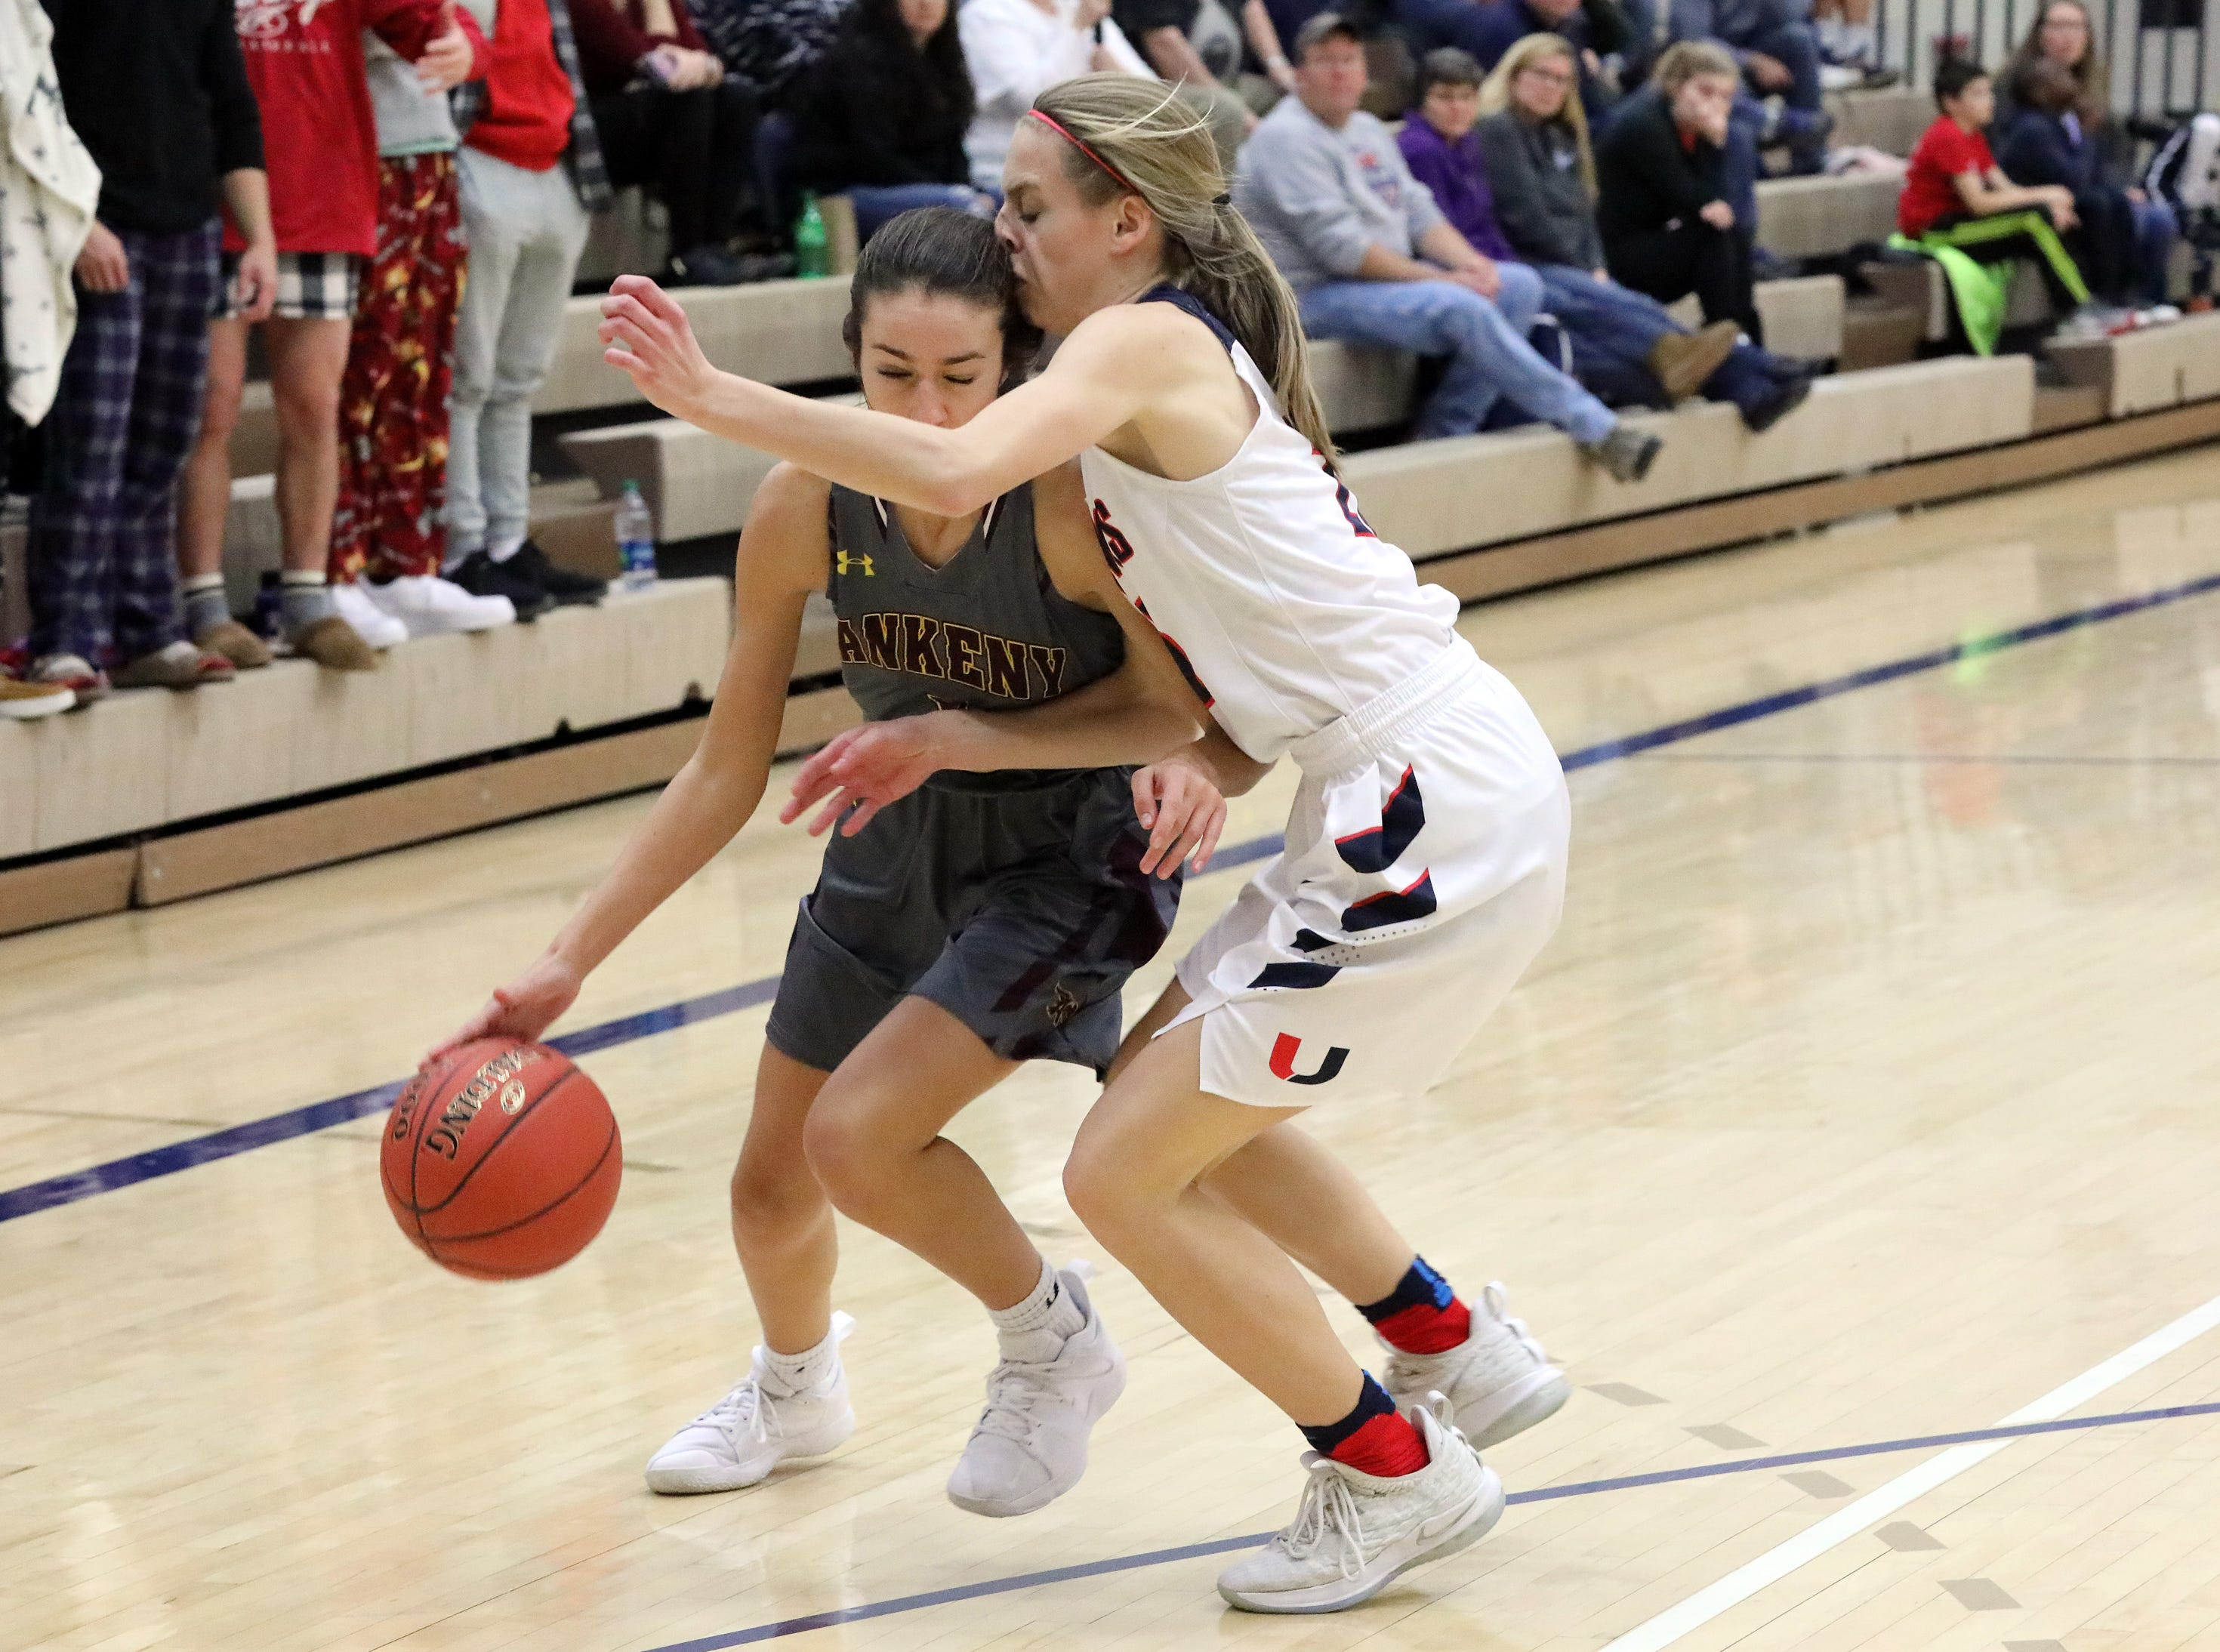 Ankeny junior guard Kayla Pitz and Urbandale sophomore guard Macy Gaskill  collide as the Ankeny Hawkettes compete against the Urbandale J-Hawks in high school basketball on Friday, Dec. 14, 2018 at Urbandale High School. Ankeny won 46 to 40.